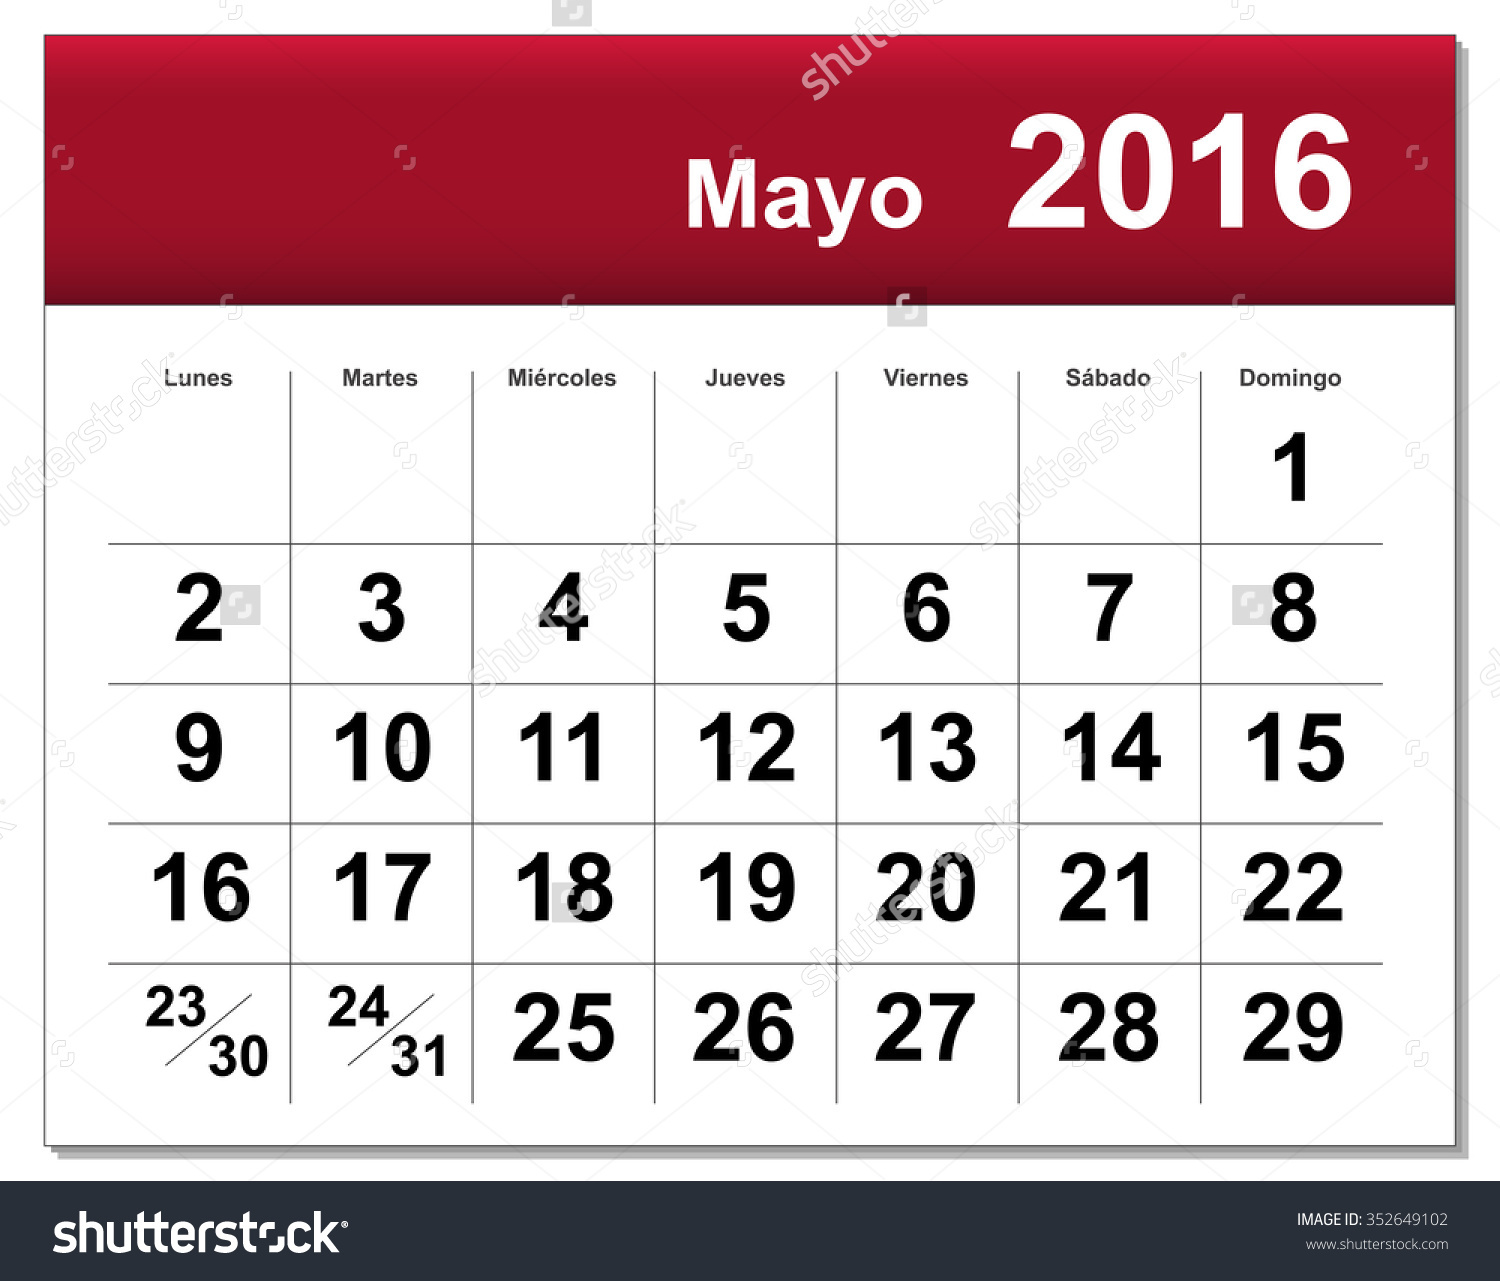 Calendar clipart bw may 2016 clip art freeuse download May 2016 calendar clipart - ClipartFox clip art freeuse download